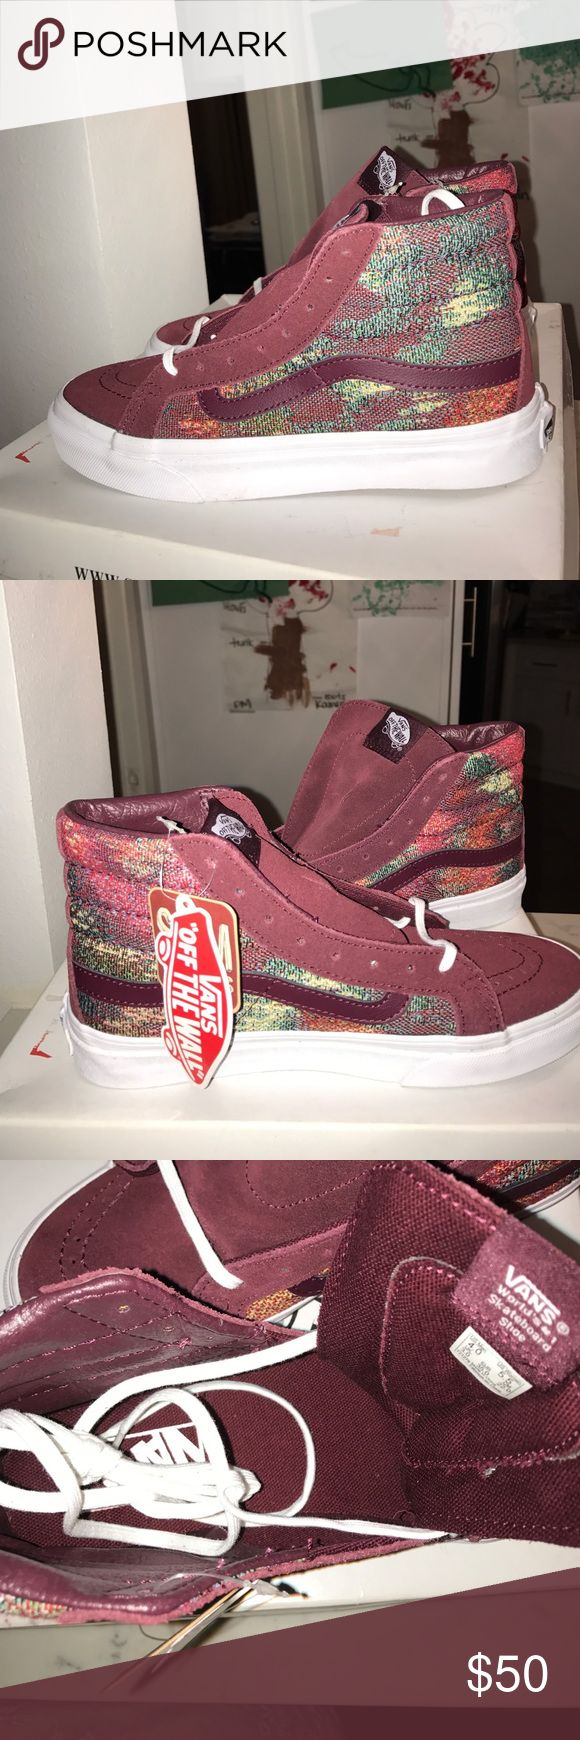 ✨🆕 Vans Slim Classic Burgundy High Tops✨ Brand new with out box. Have never been worn! Gorgeous color combo 👌 Suede and fabric material Vans Shoes Sneakers